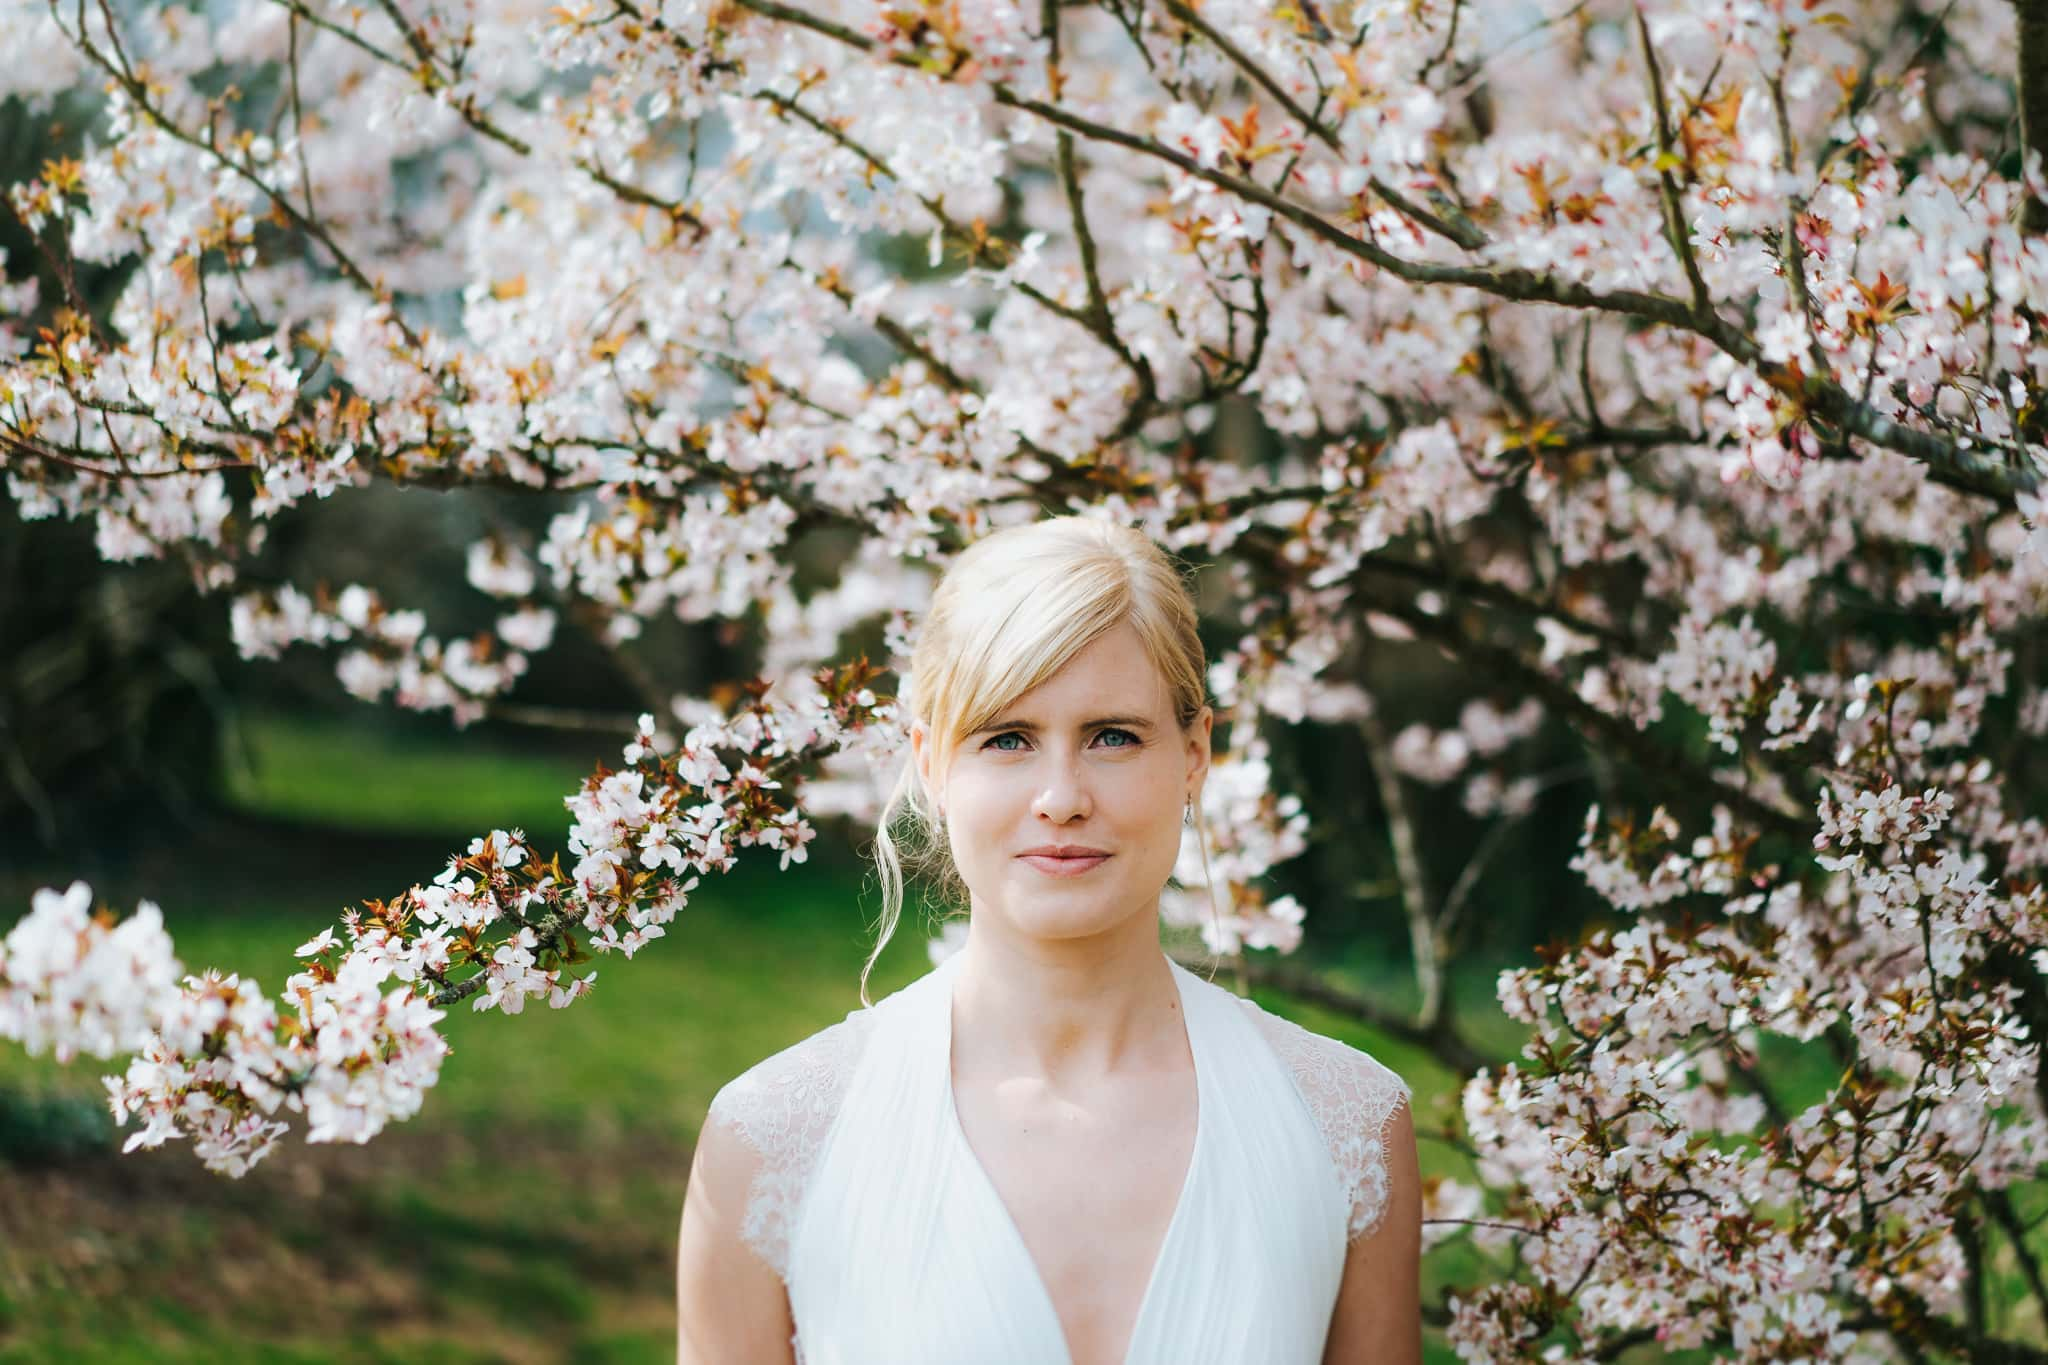 isle of wight wedding bridal portrait under cherry blossom